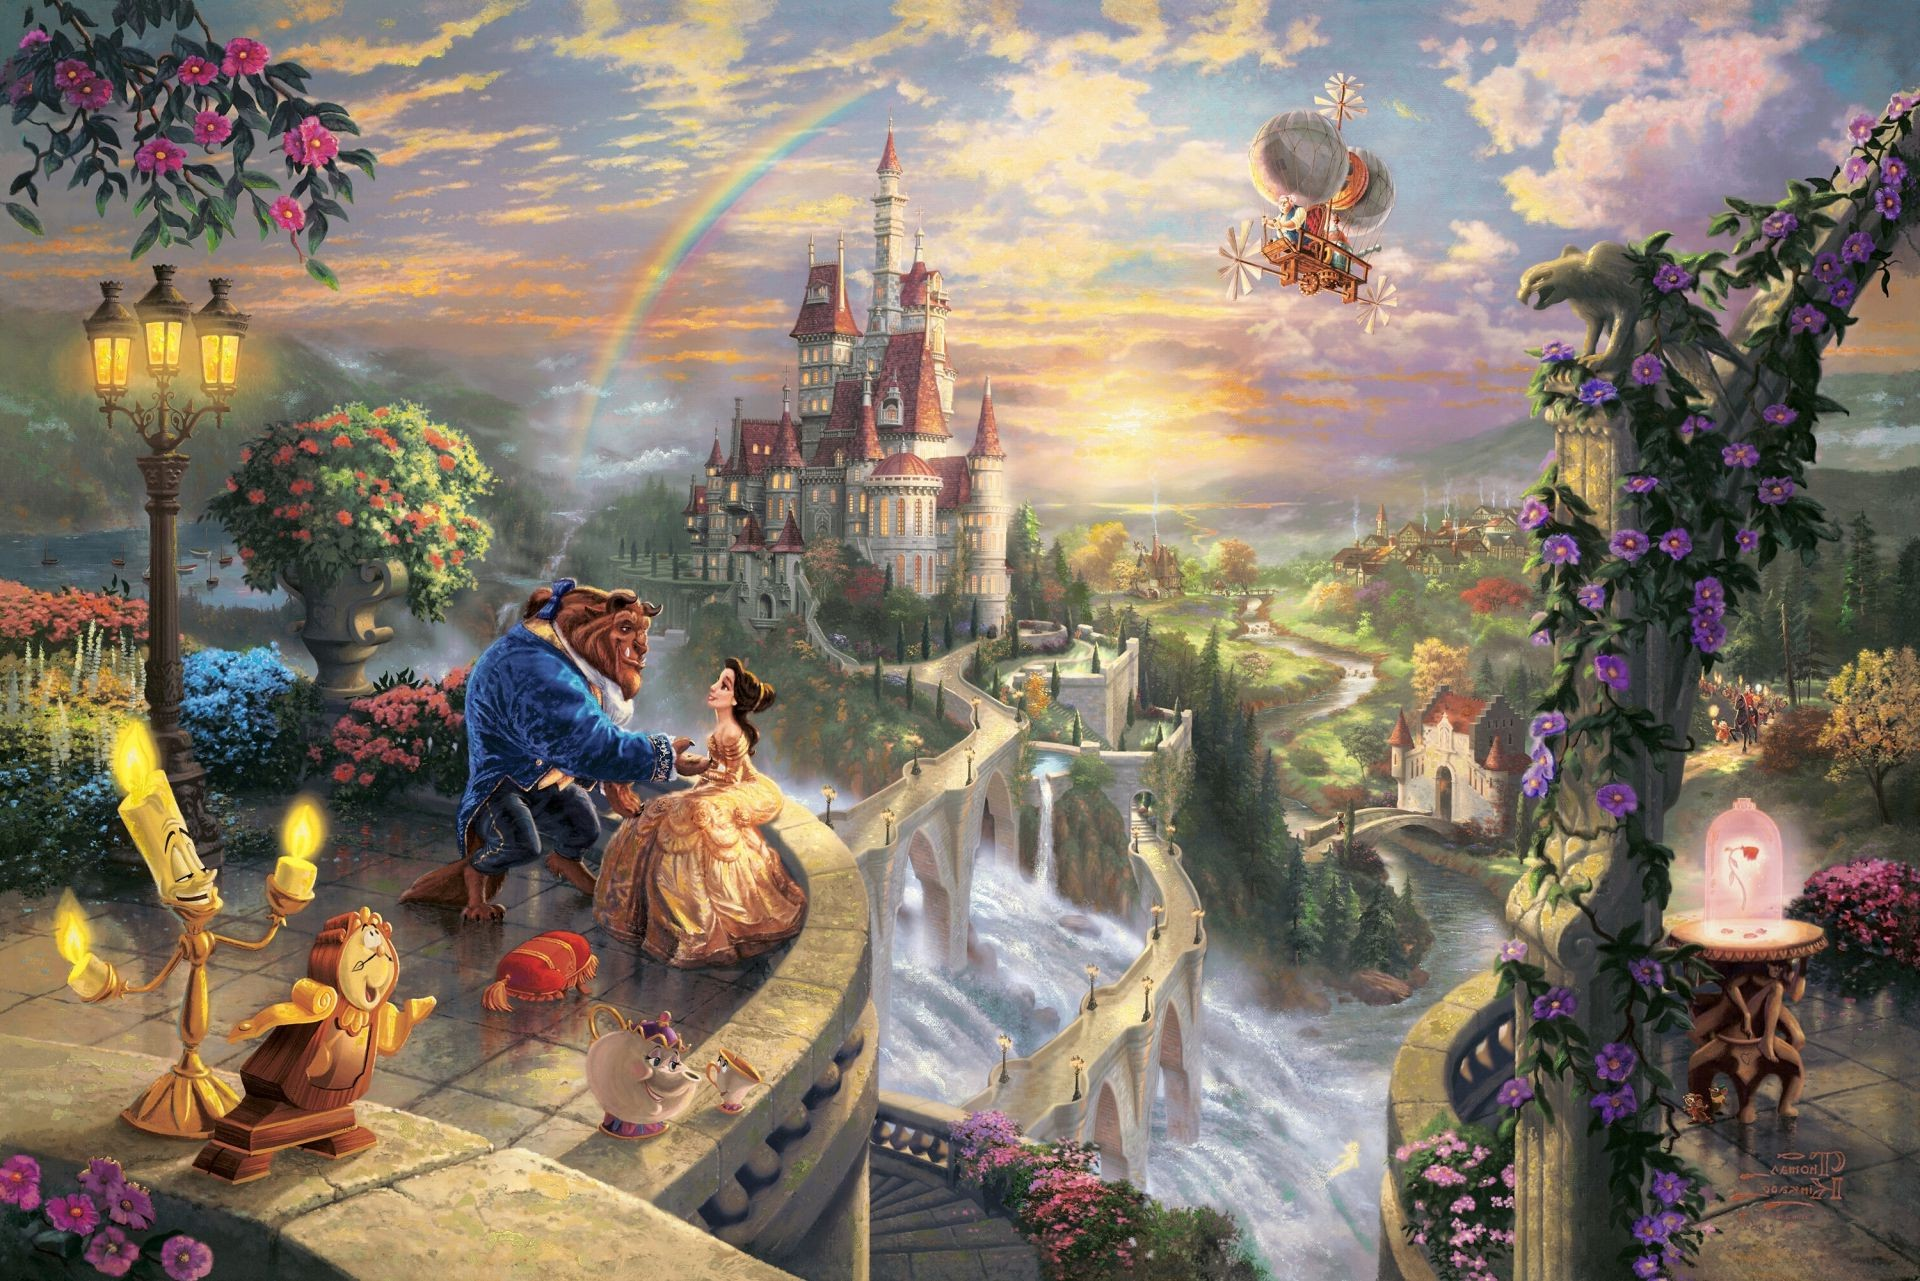 Thomas kinkade the disney dreams collection beauty and the ...